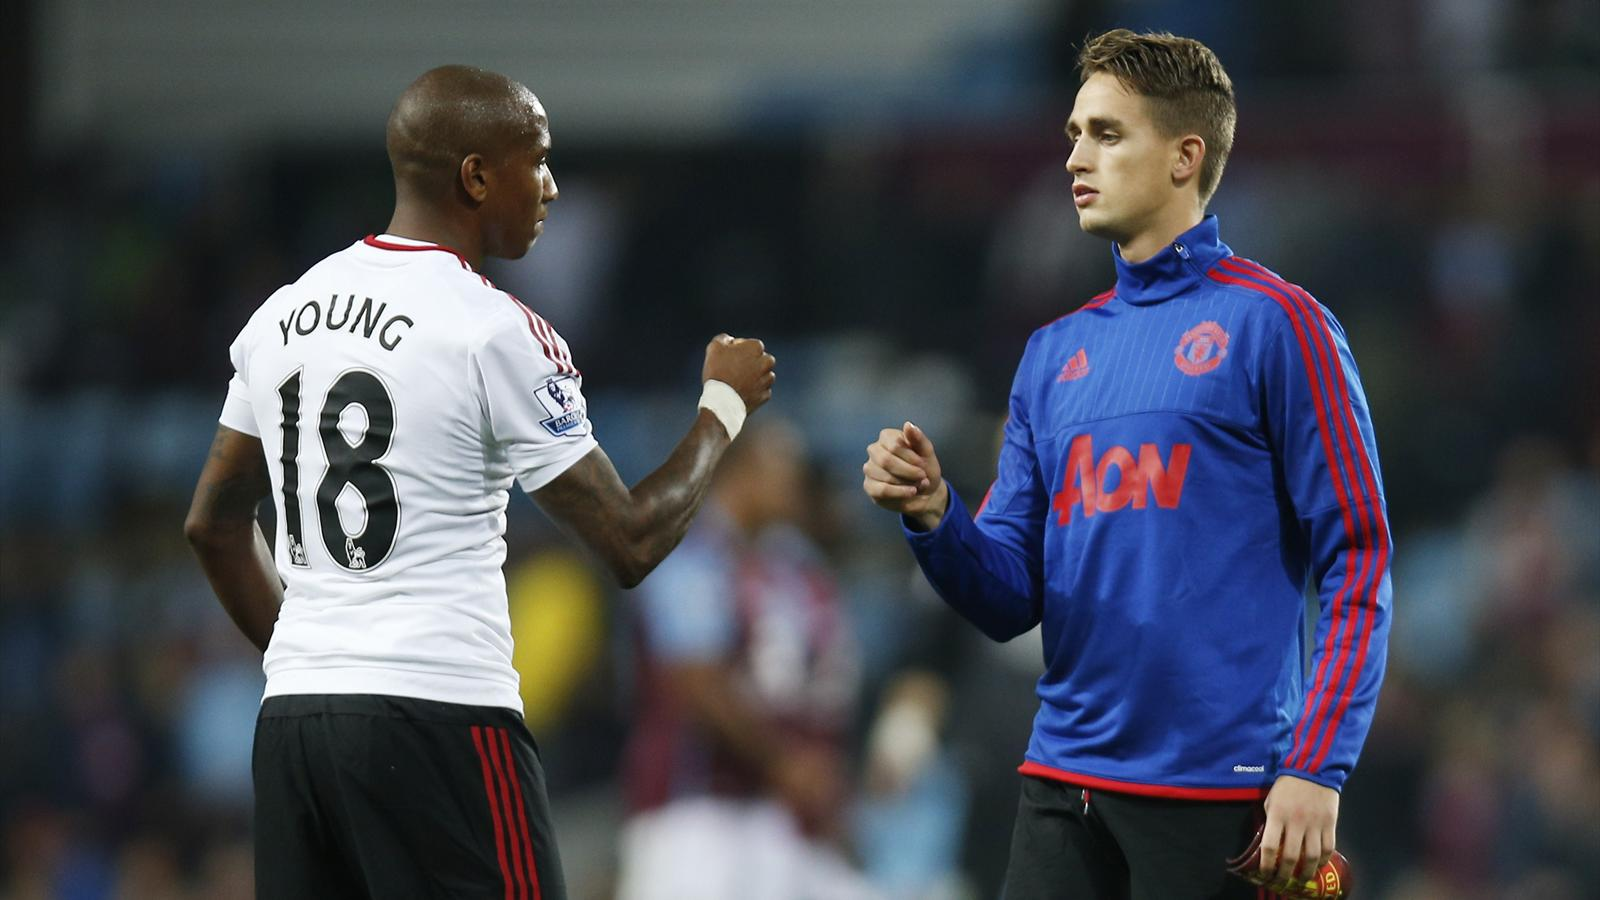 Adnan Januzaj bumps fists with Ashley Young